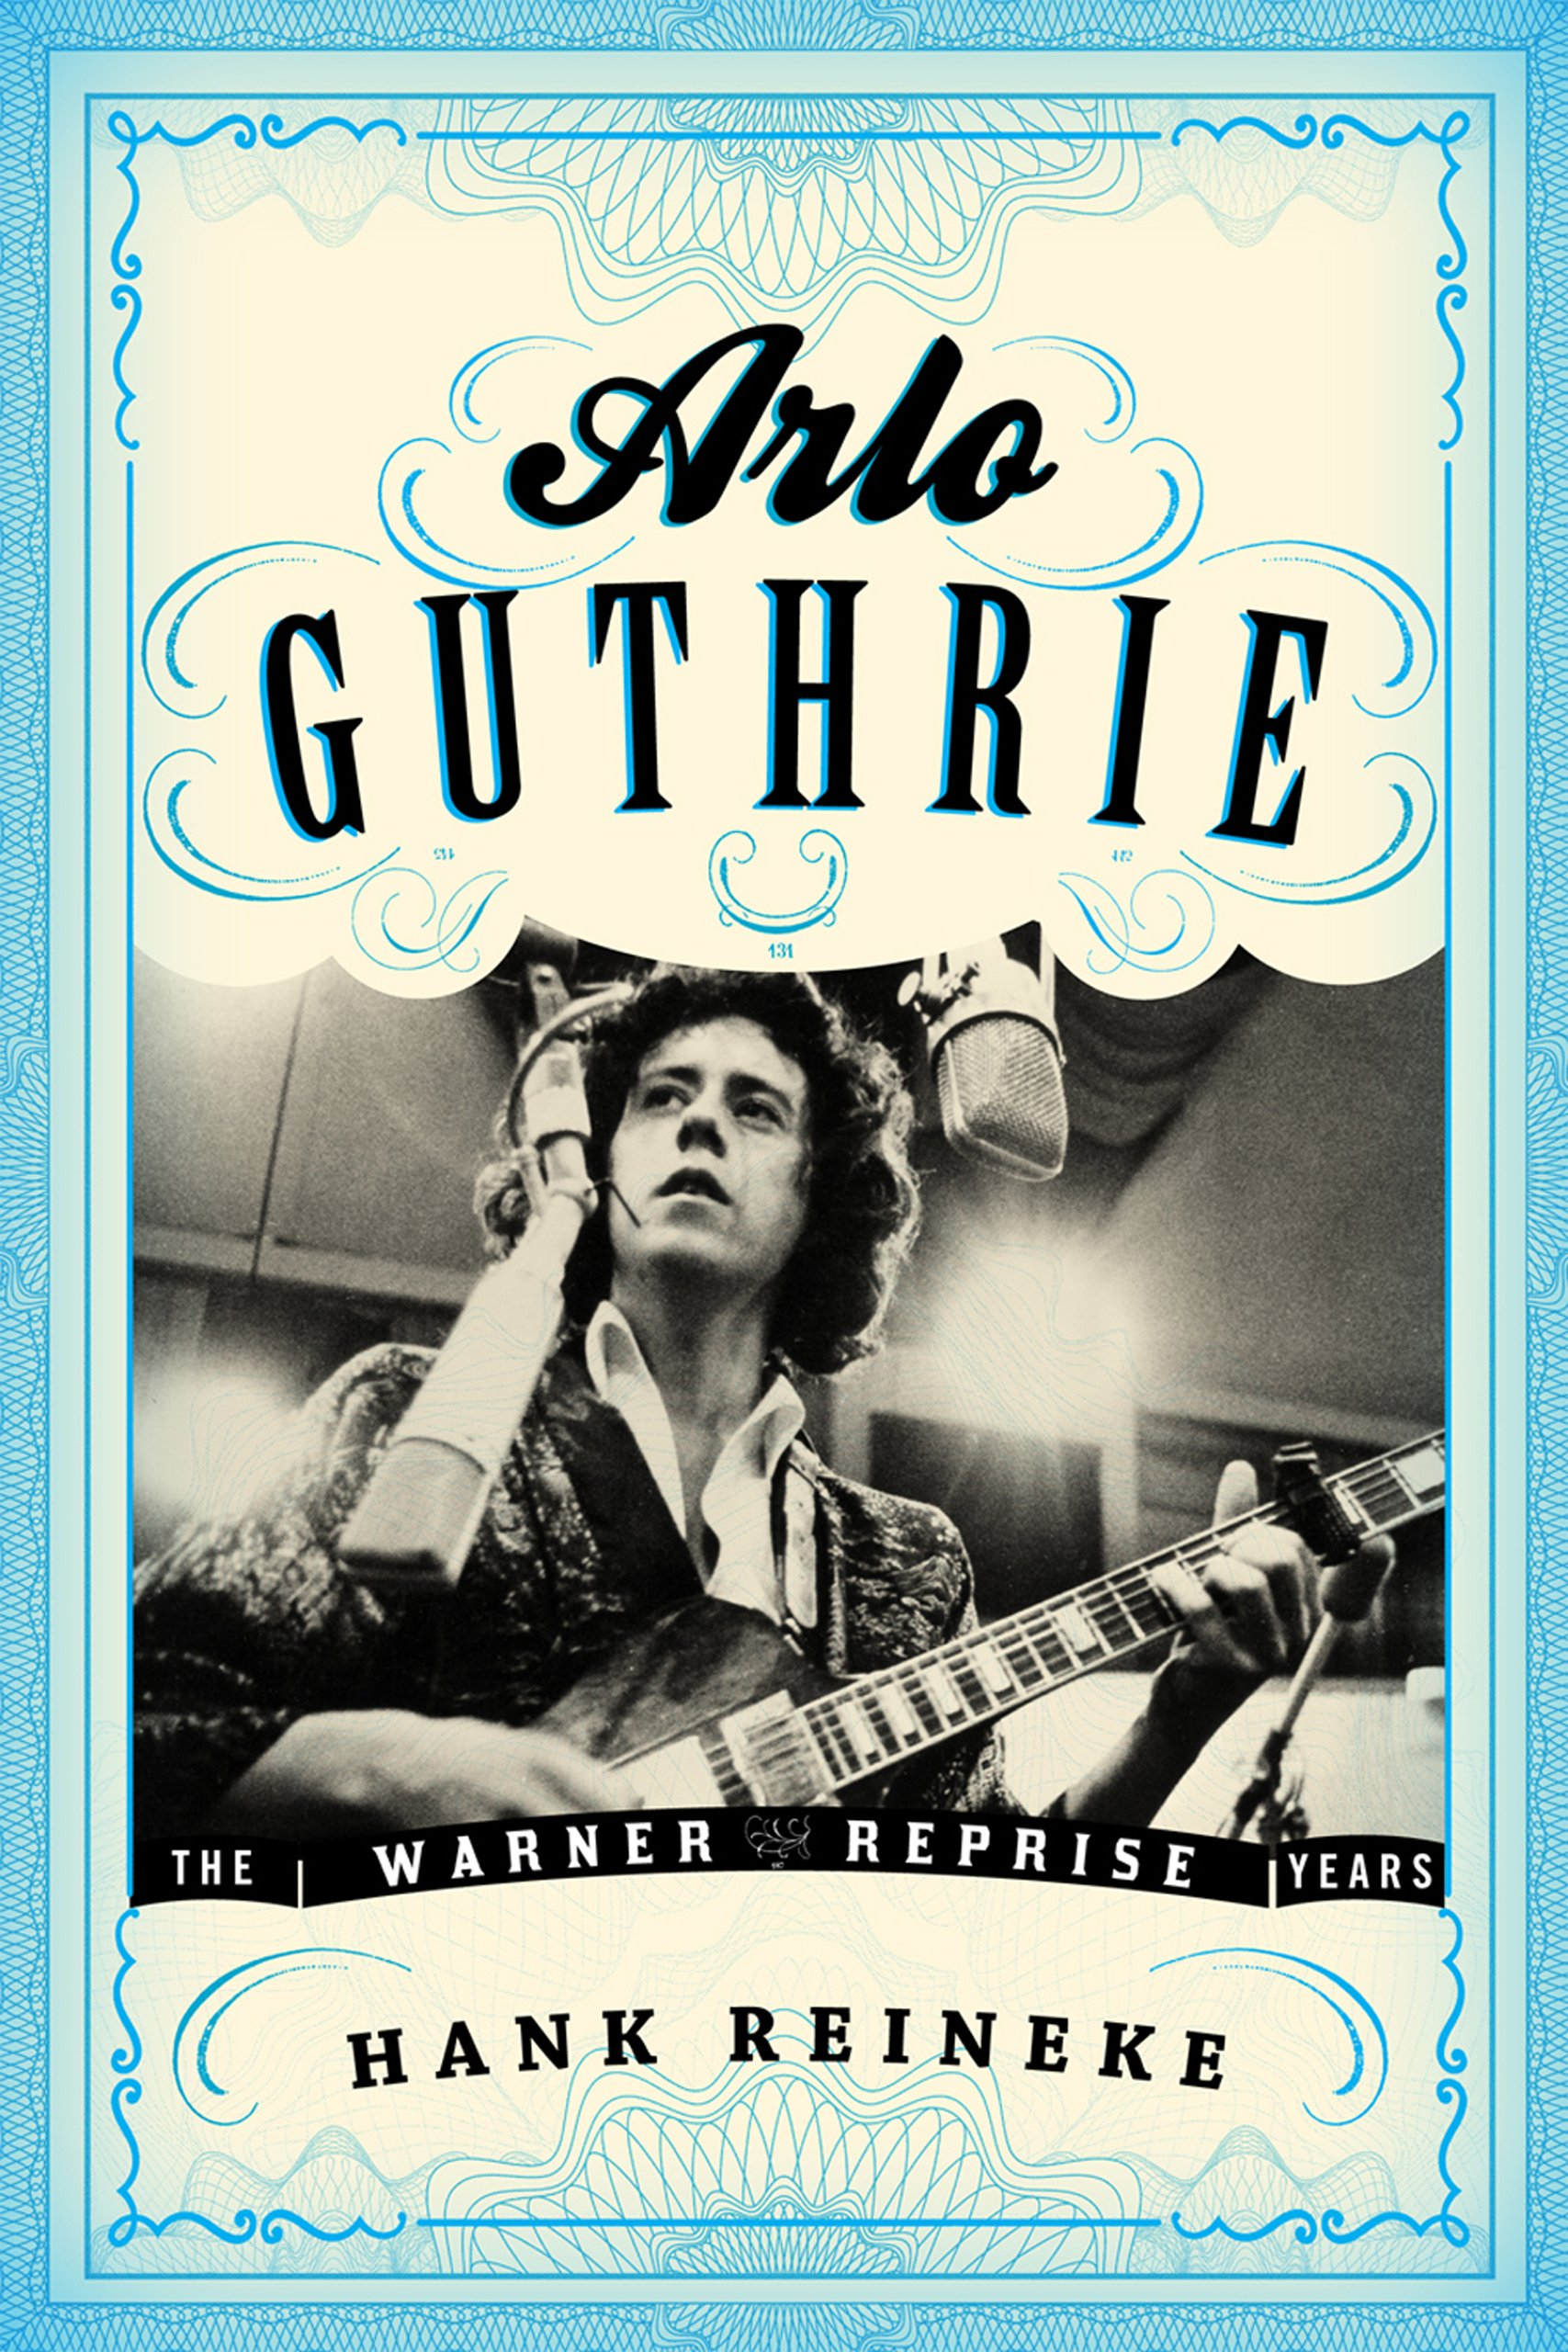 Arlo Guthrie: The Warner/Reprise Years (American Folk Music and Musicians Series)